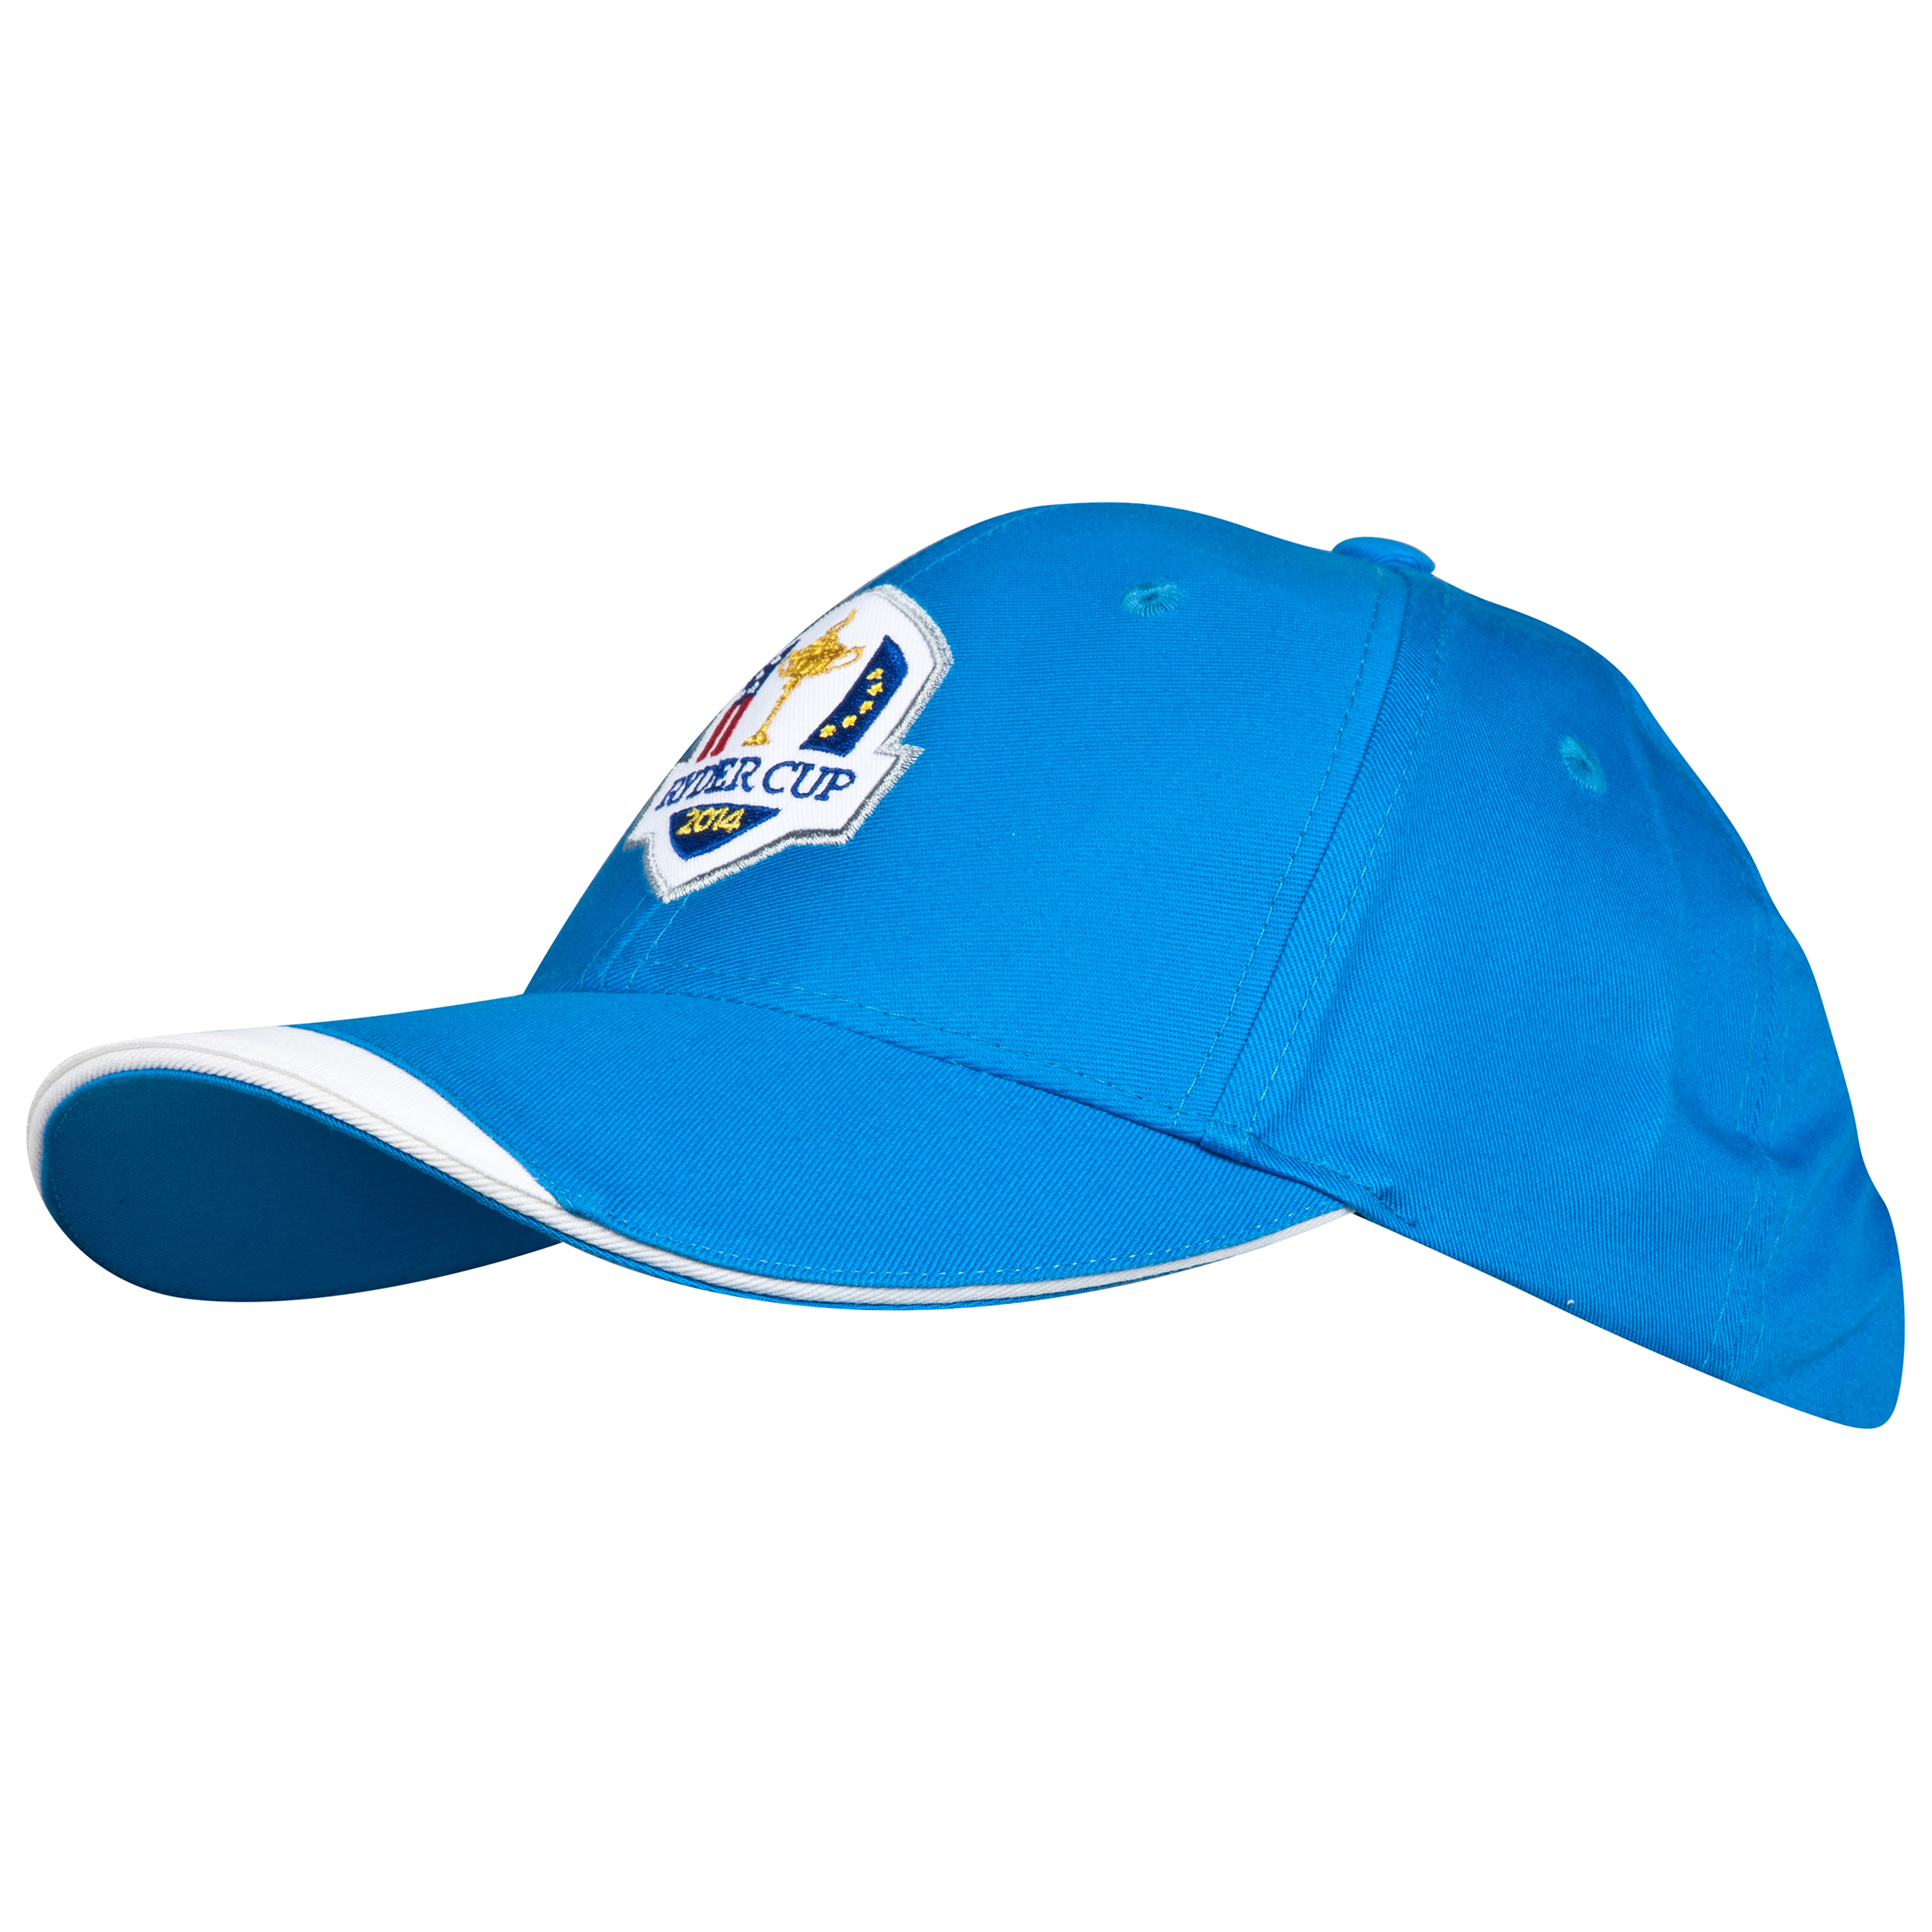 The 2014 Ryder Cup Glenmuir Fanwear Ardle Cap - Saltire/White/Gold